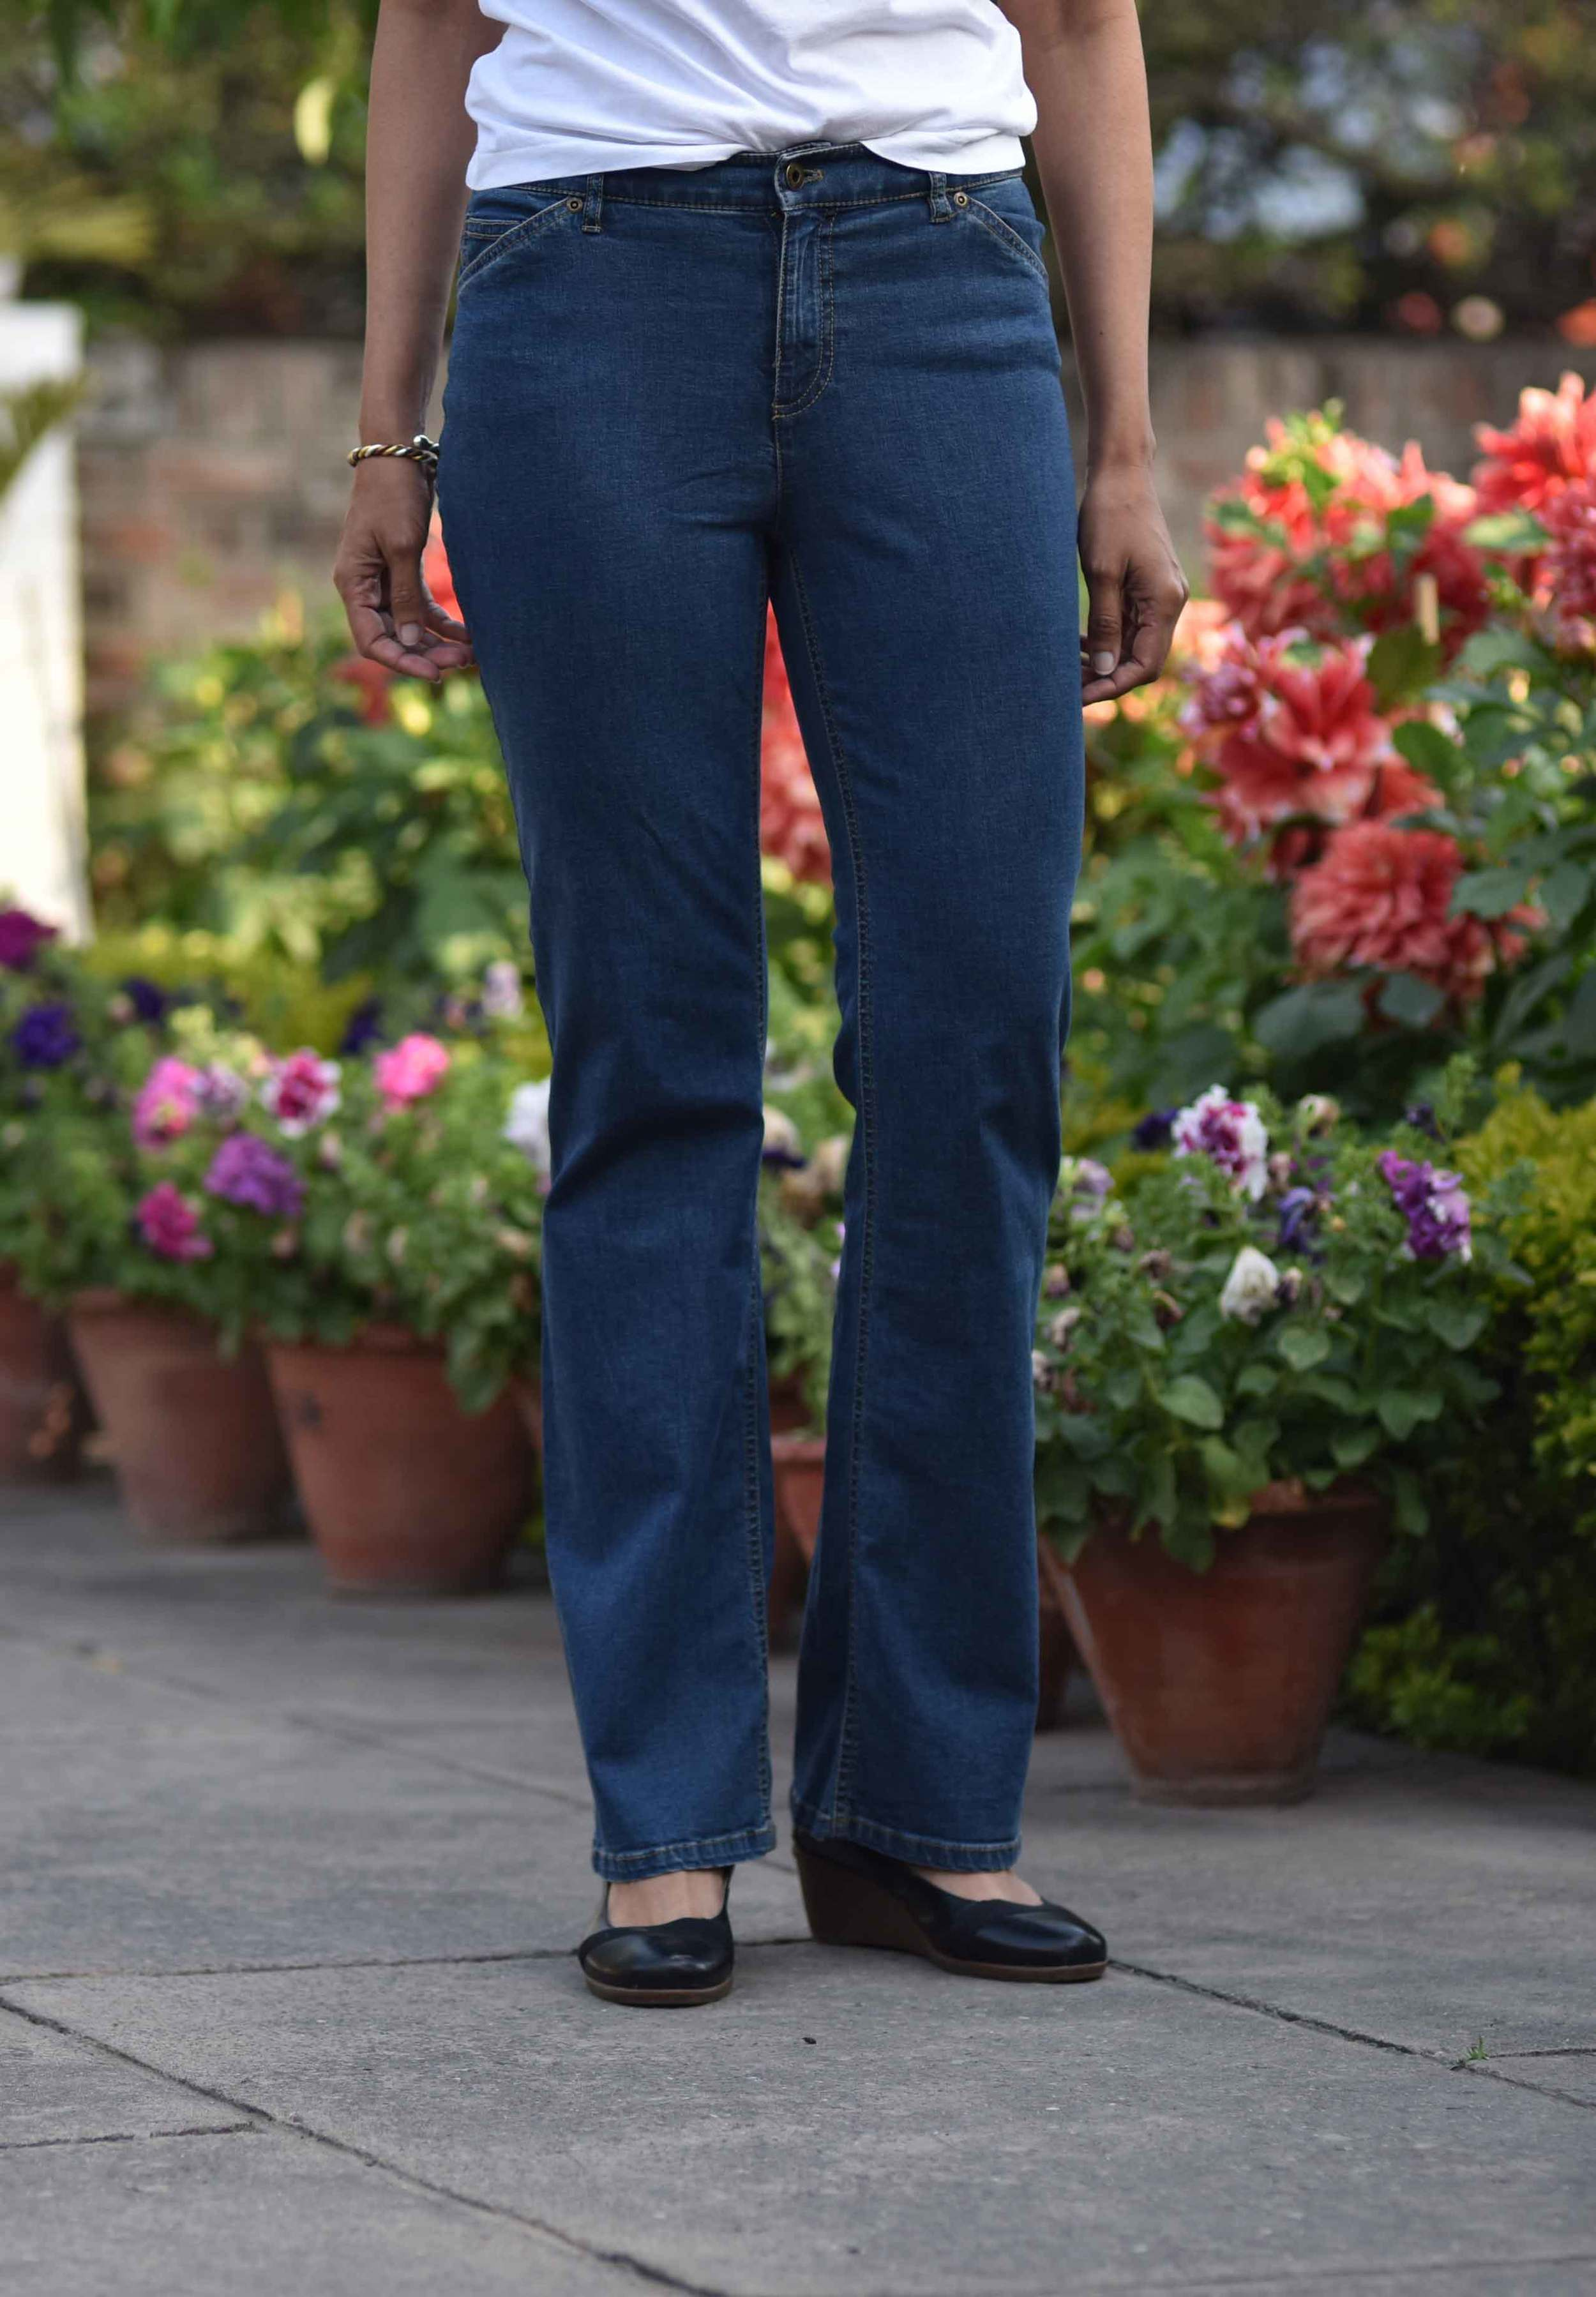 The JJill Tried and True Fit Bootcut Jeans are so comfy! Image©gunjanvirk